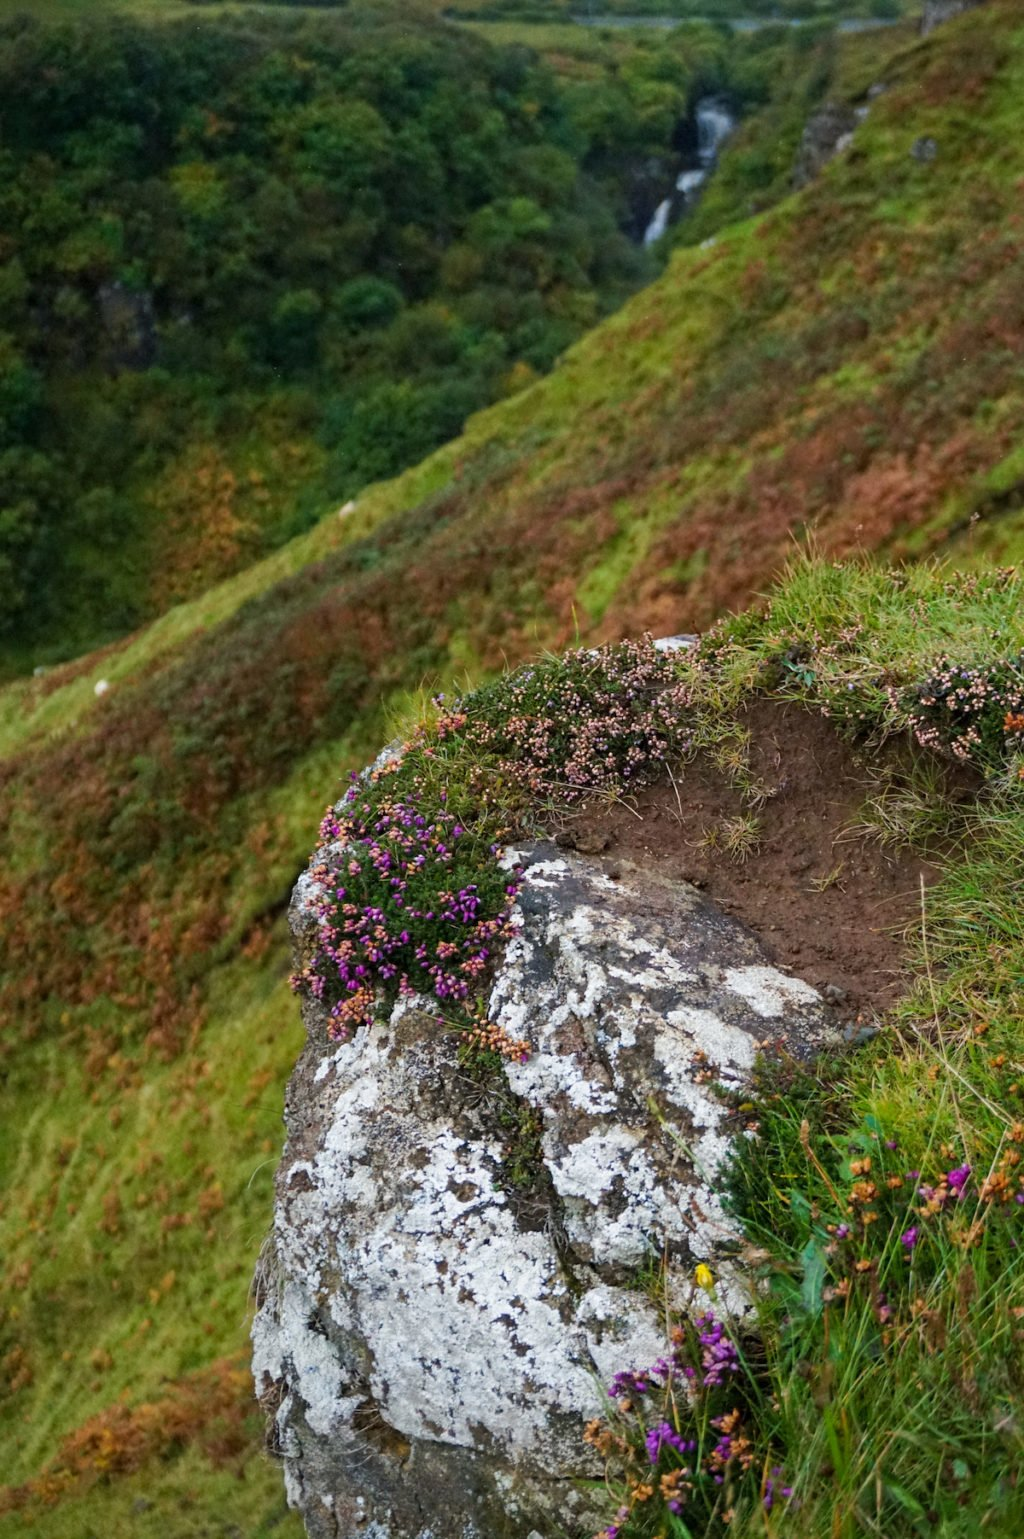 Flowers •3-Day Tour to Skye, The Highlands, and Loch Ness | The Wanderful Me